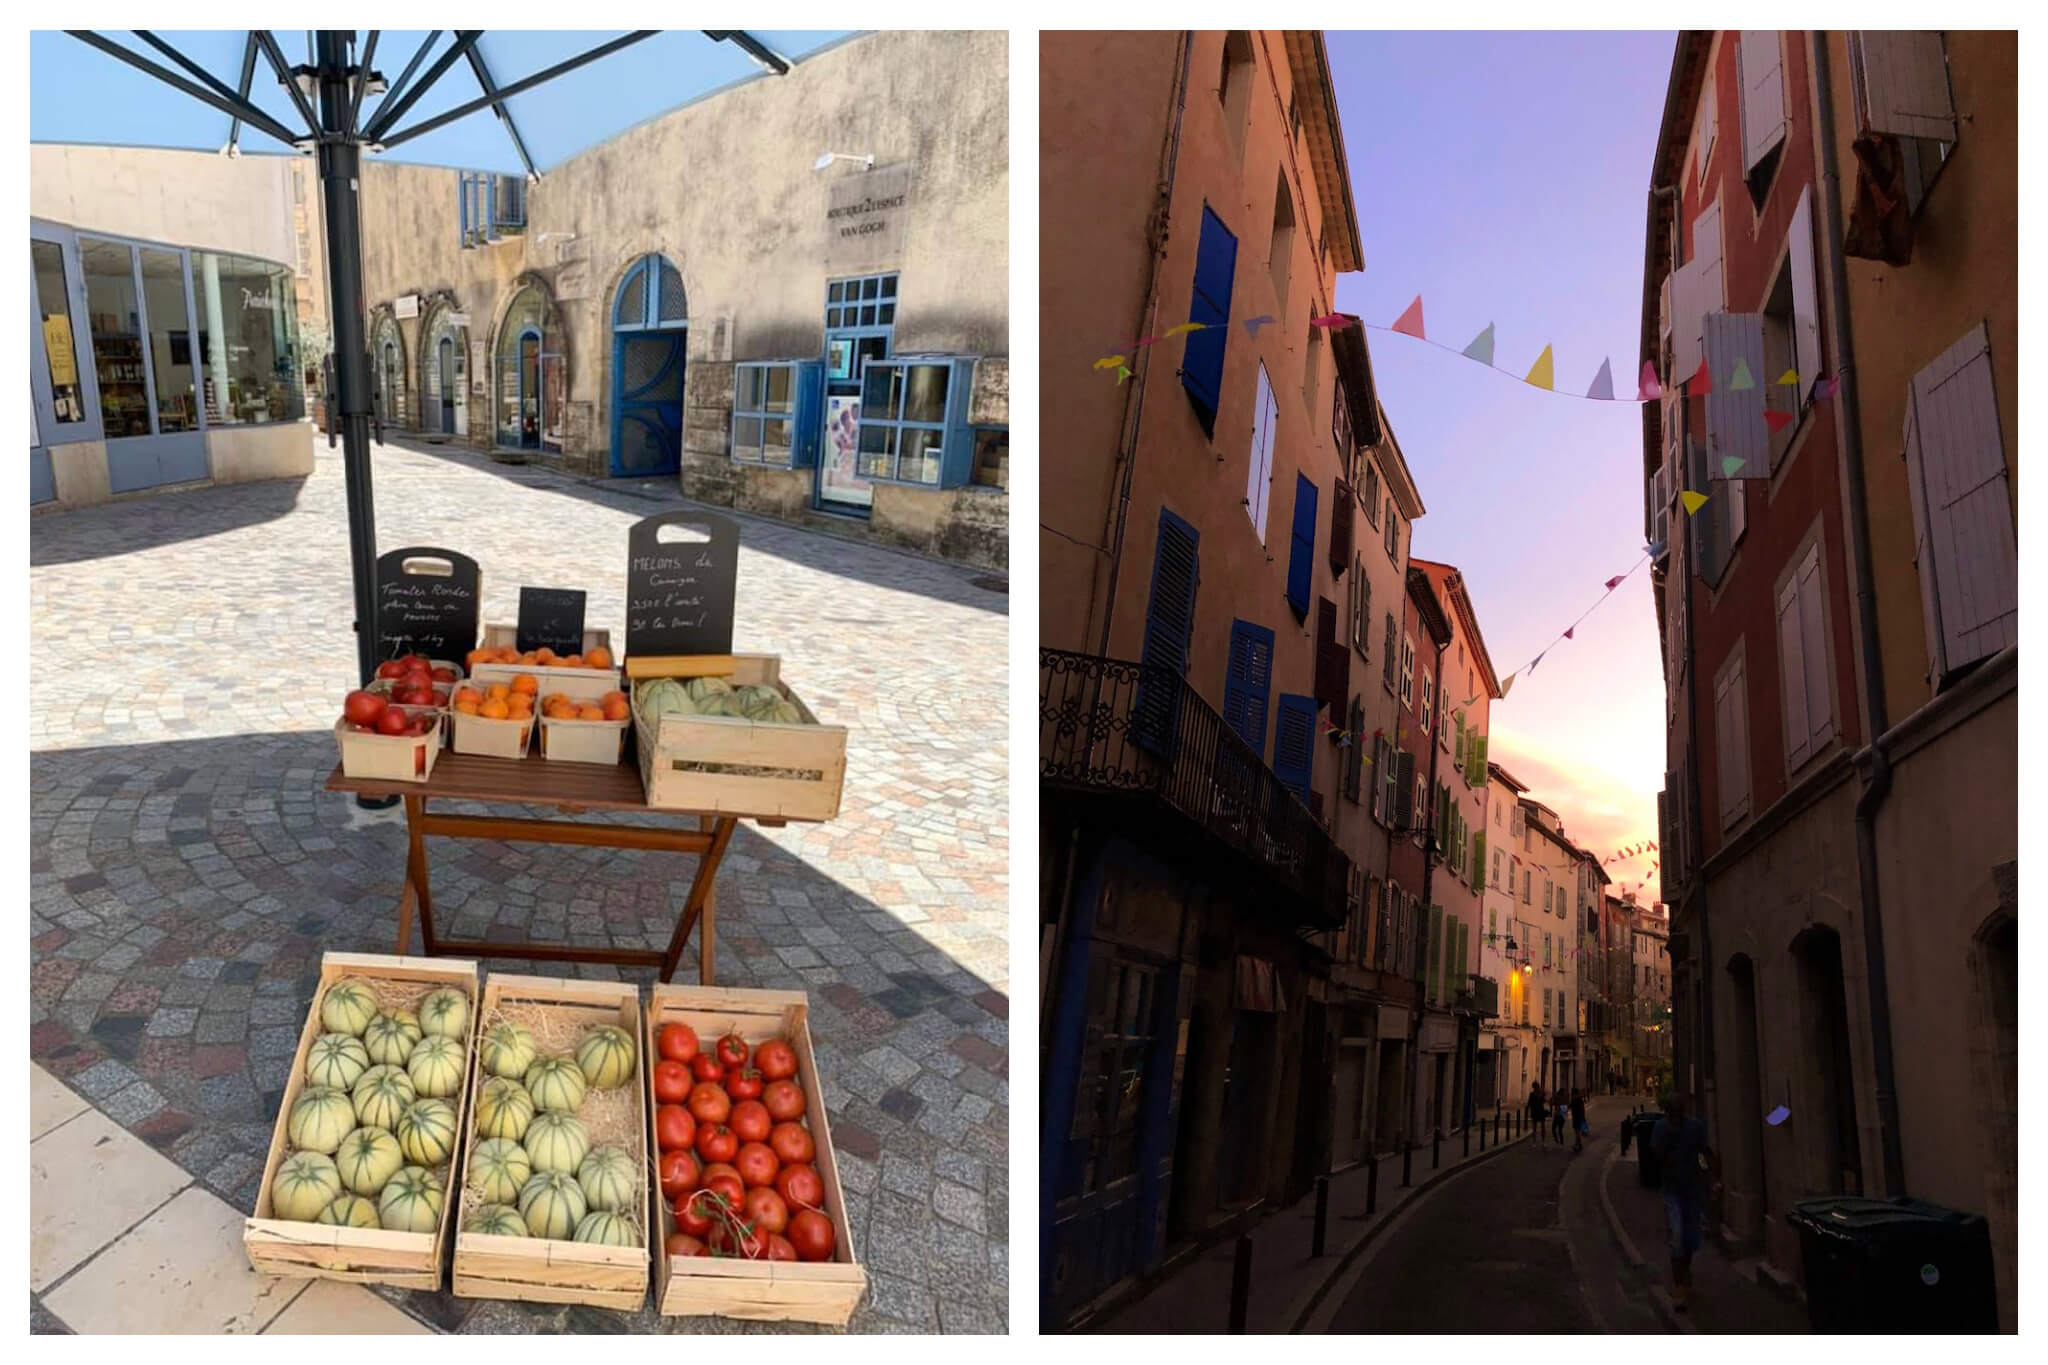 Left: Fresh produce, including cantaloupe and tomatoes, sit in wooden produce boxes at Fraîcheur et Délices in Arles, Right: A colorful street in Provence, lined with small triangle flags, is empty just after sundown.